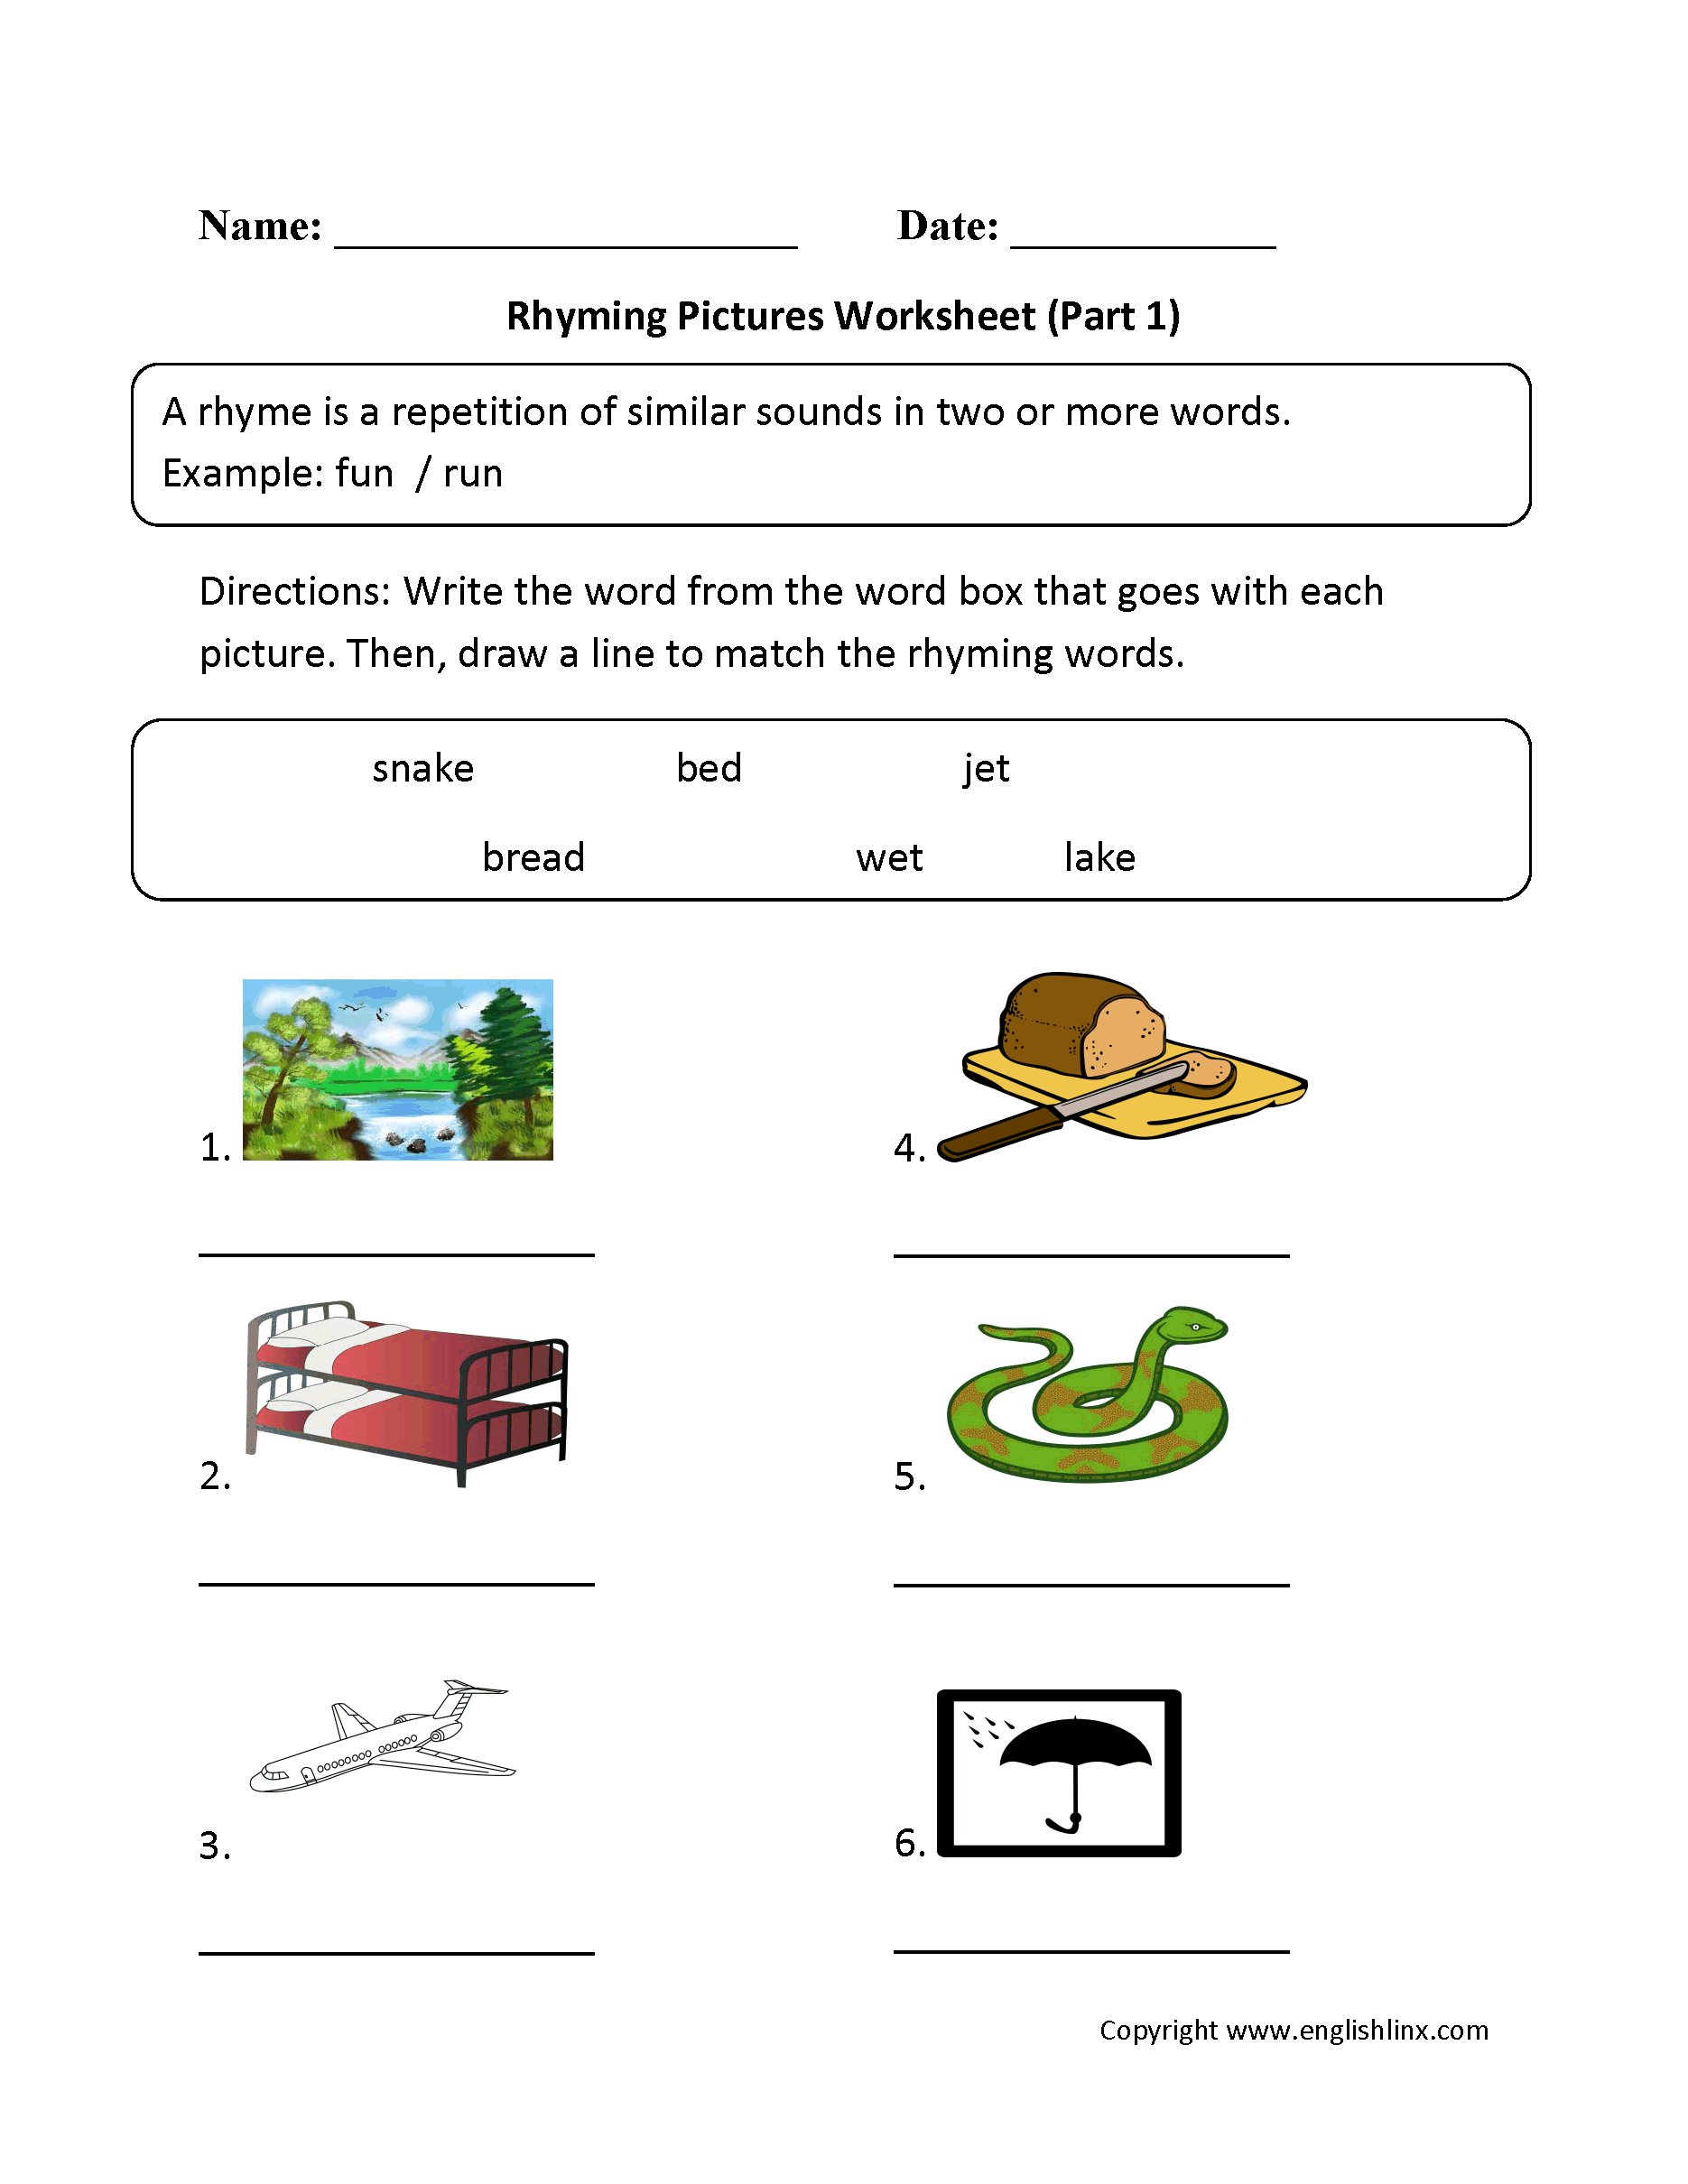 Worksheets Free Printable Rhyming Worksheets englishlinx com rhyming worksheets pictures worksheets